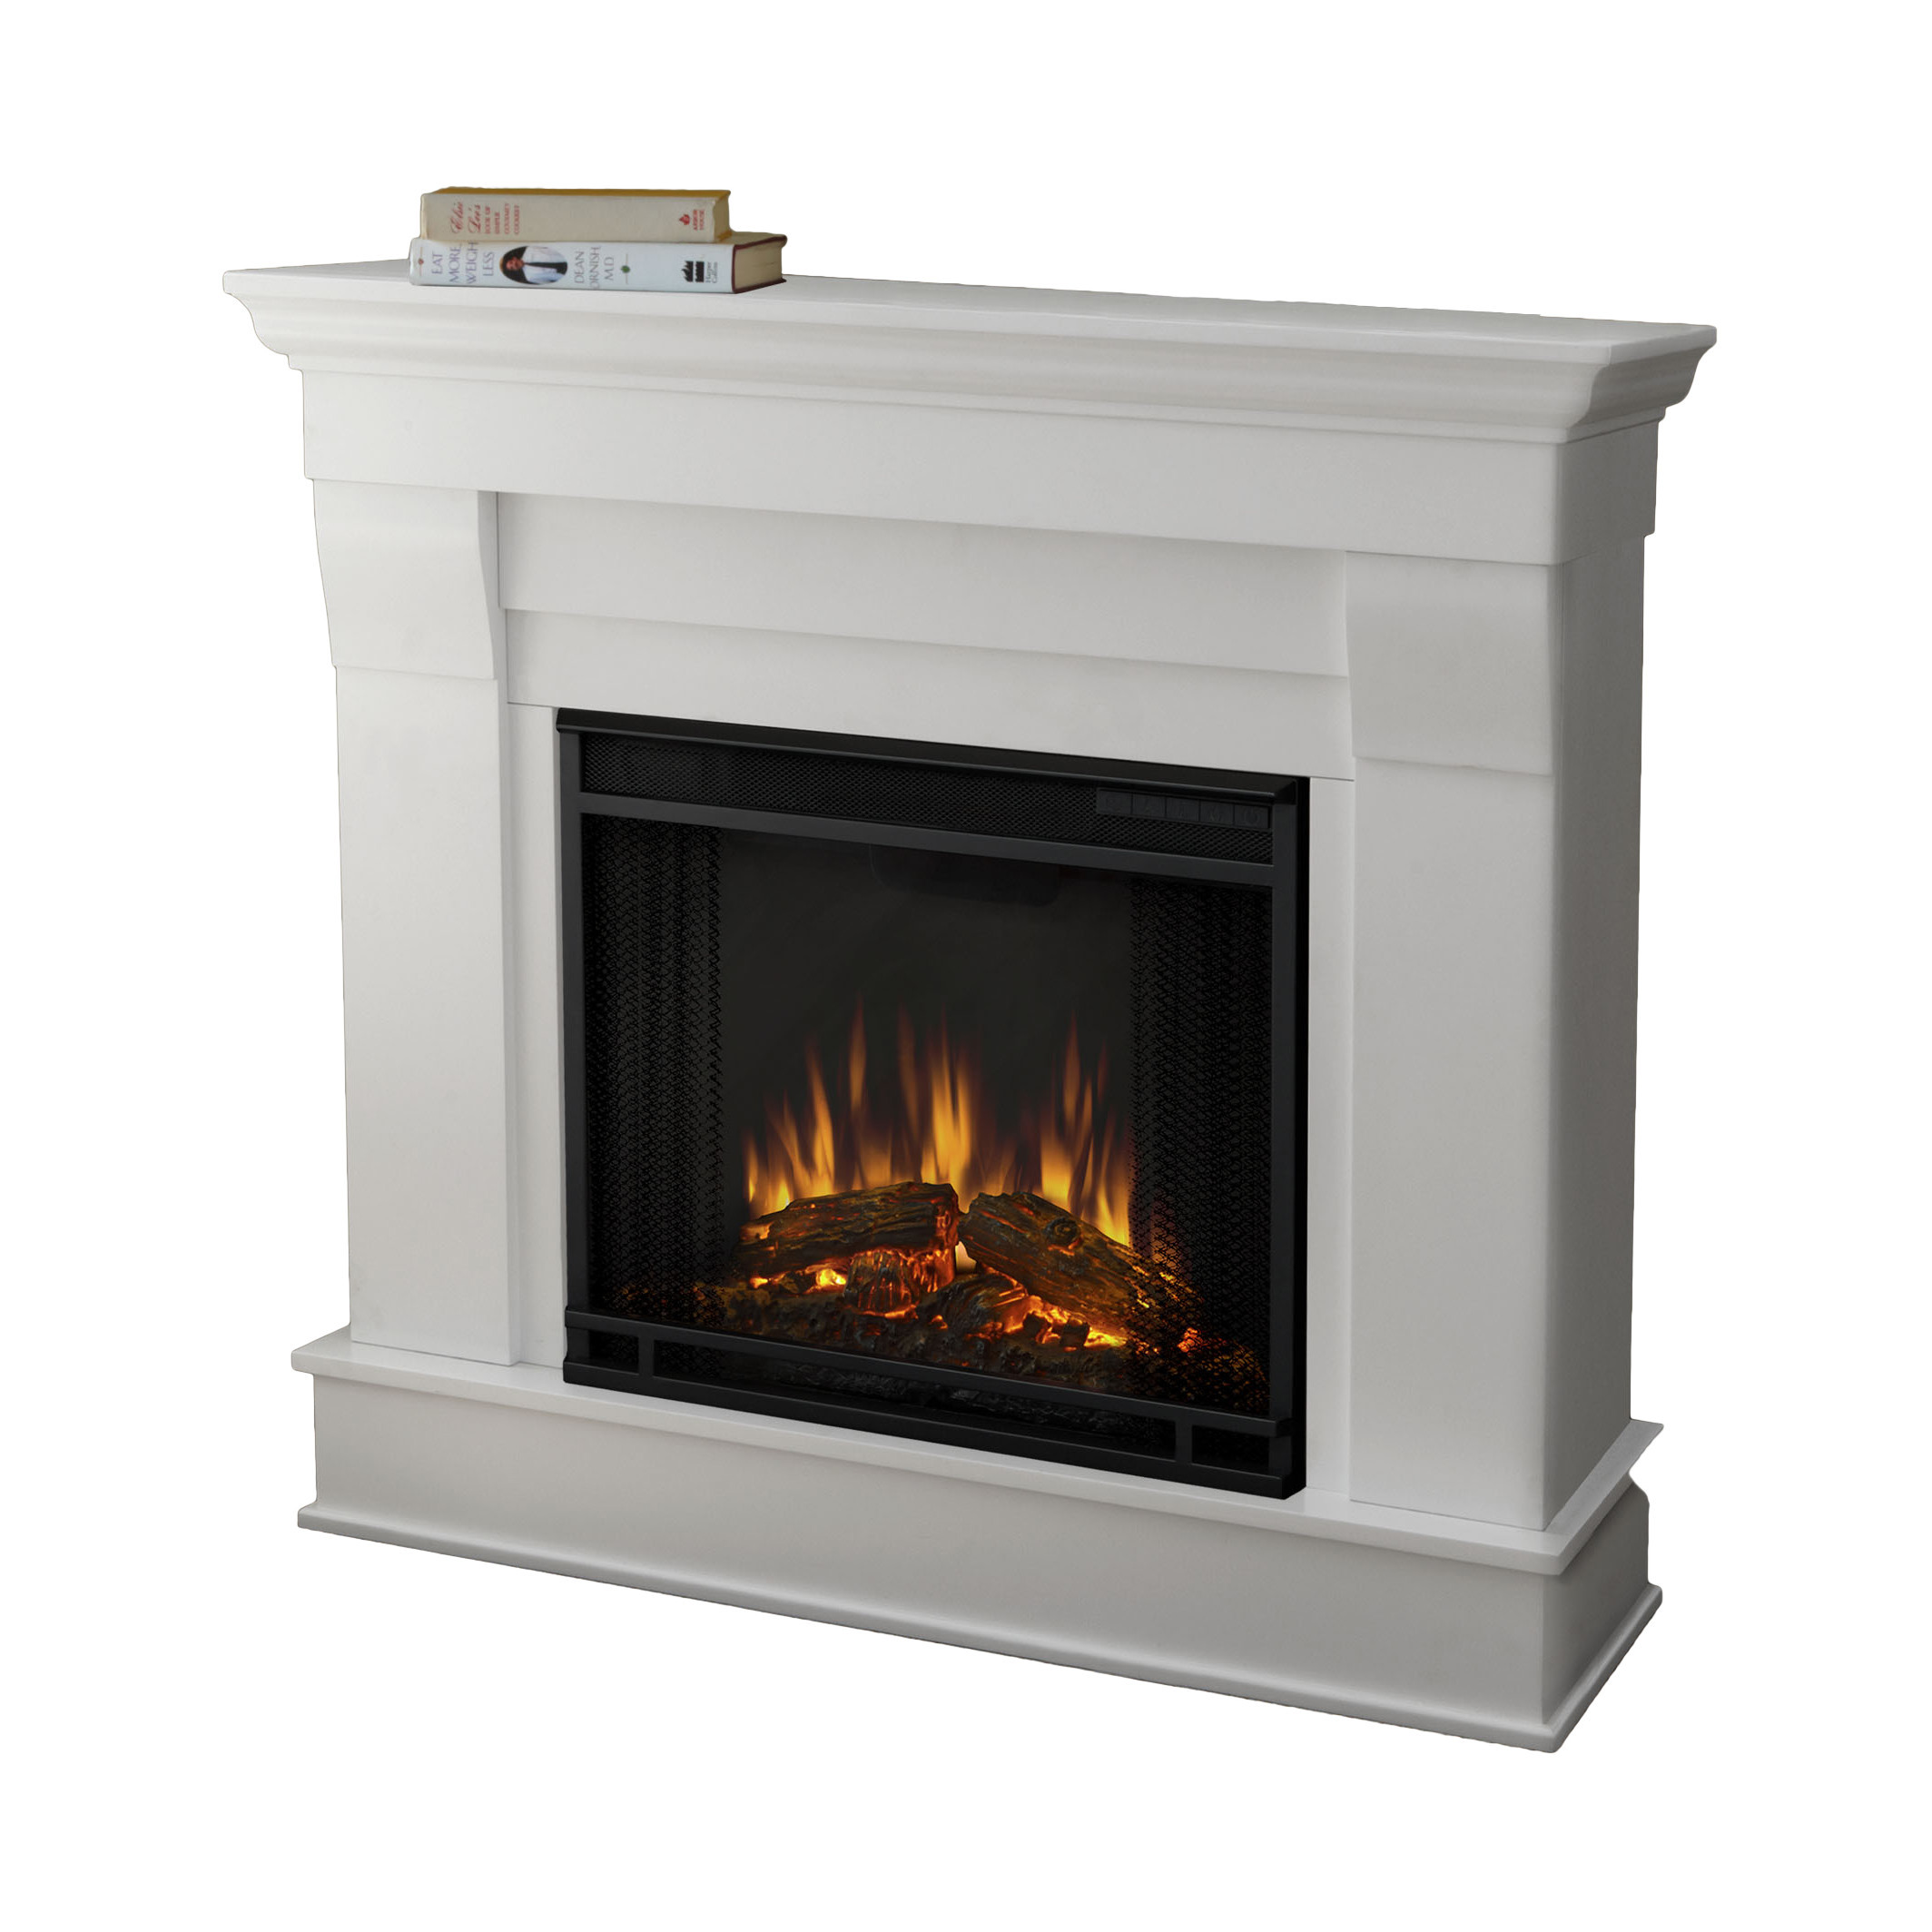 Best ideas about Real Flame Electric Fireplace . Save or Pin Real Flame Chateau Electric Fireplace & Reviews Now.